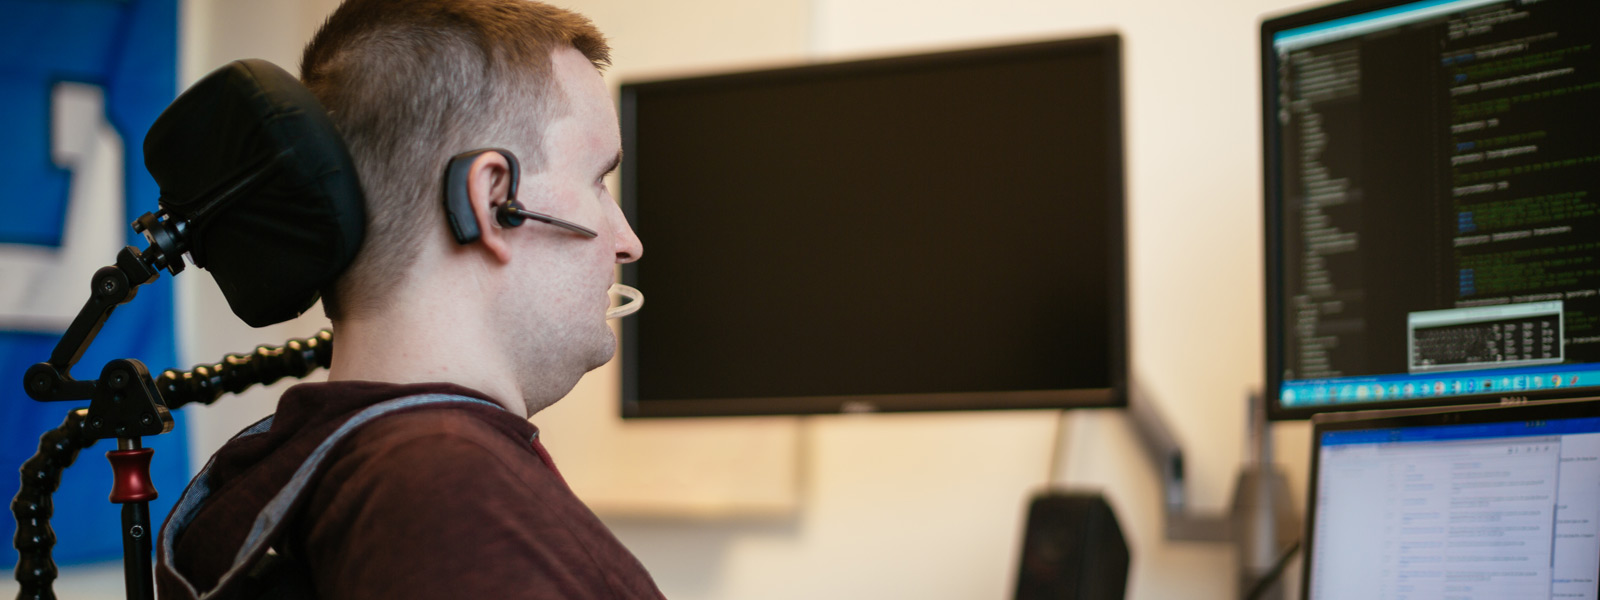 Man at a desk using assistive hardware technology to operate a Windows 10 computer with eye control